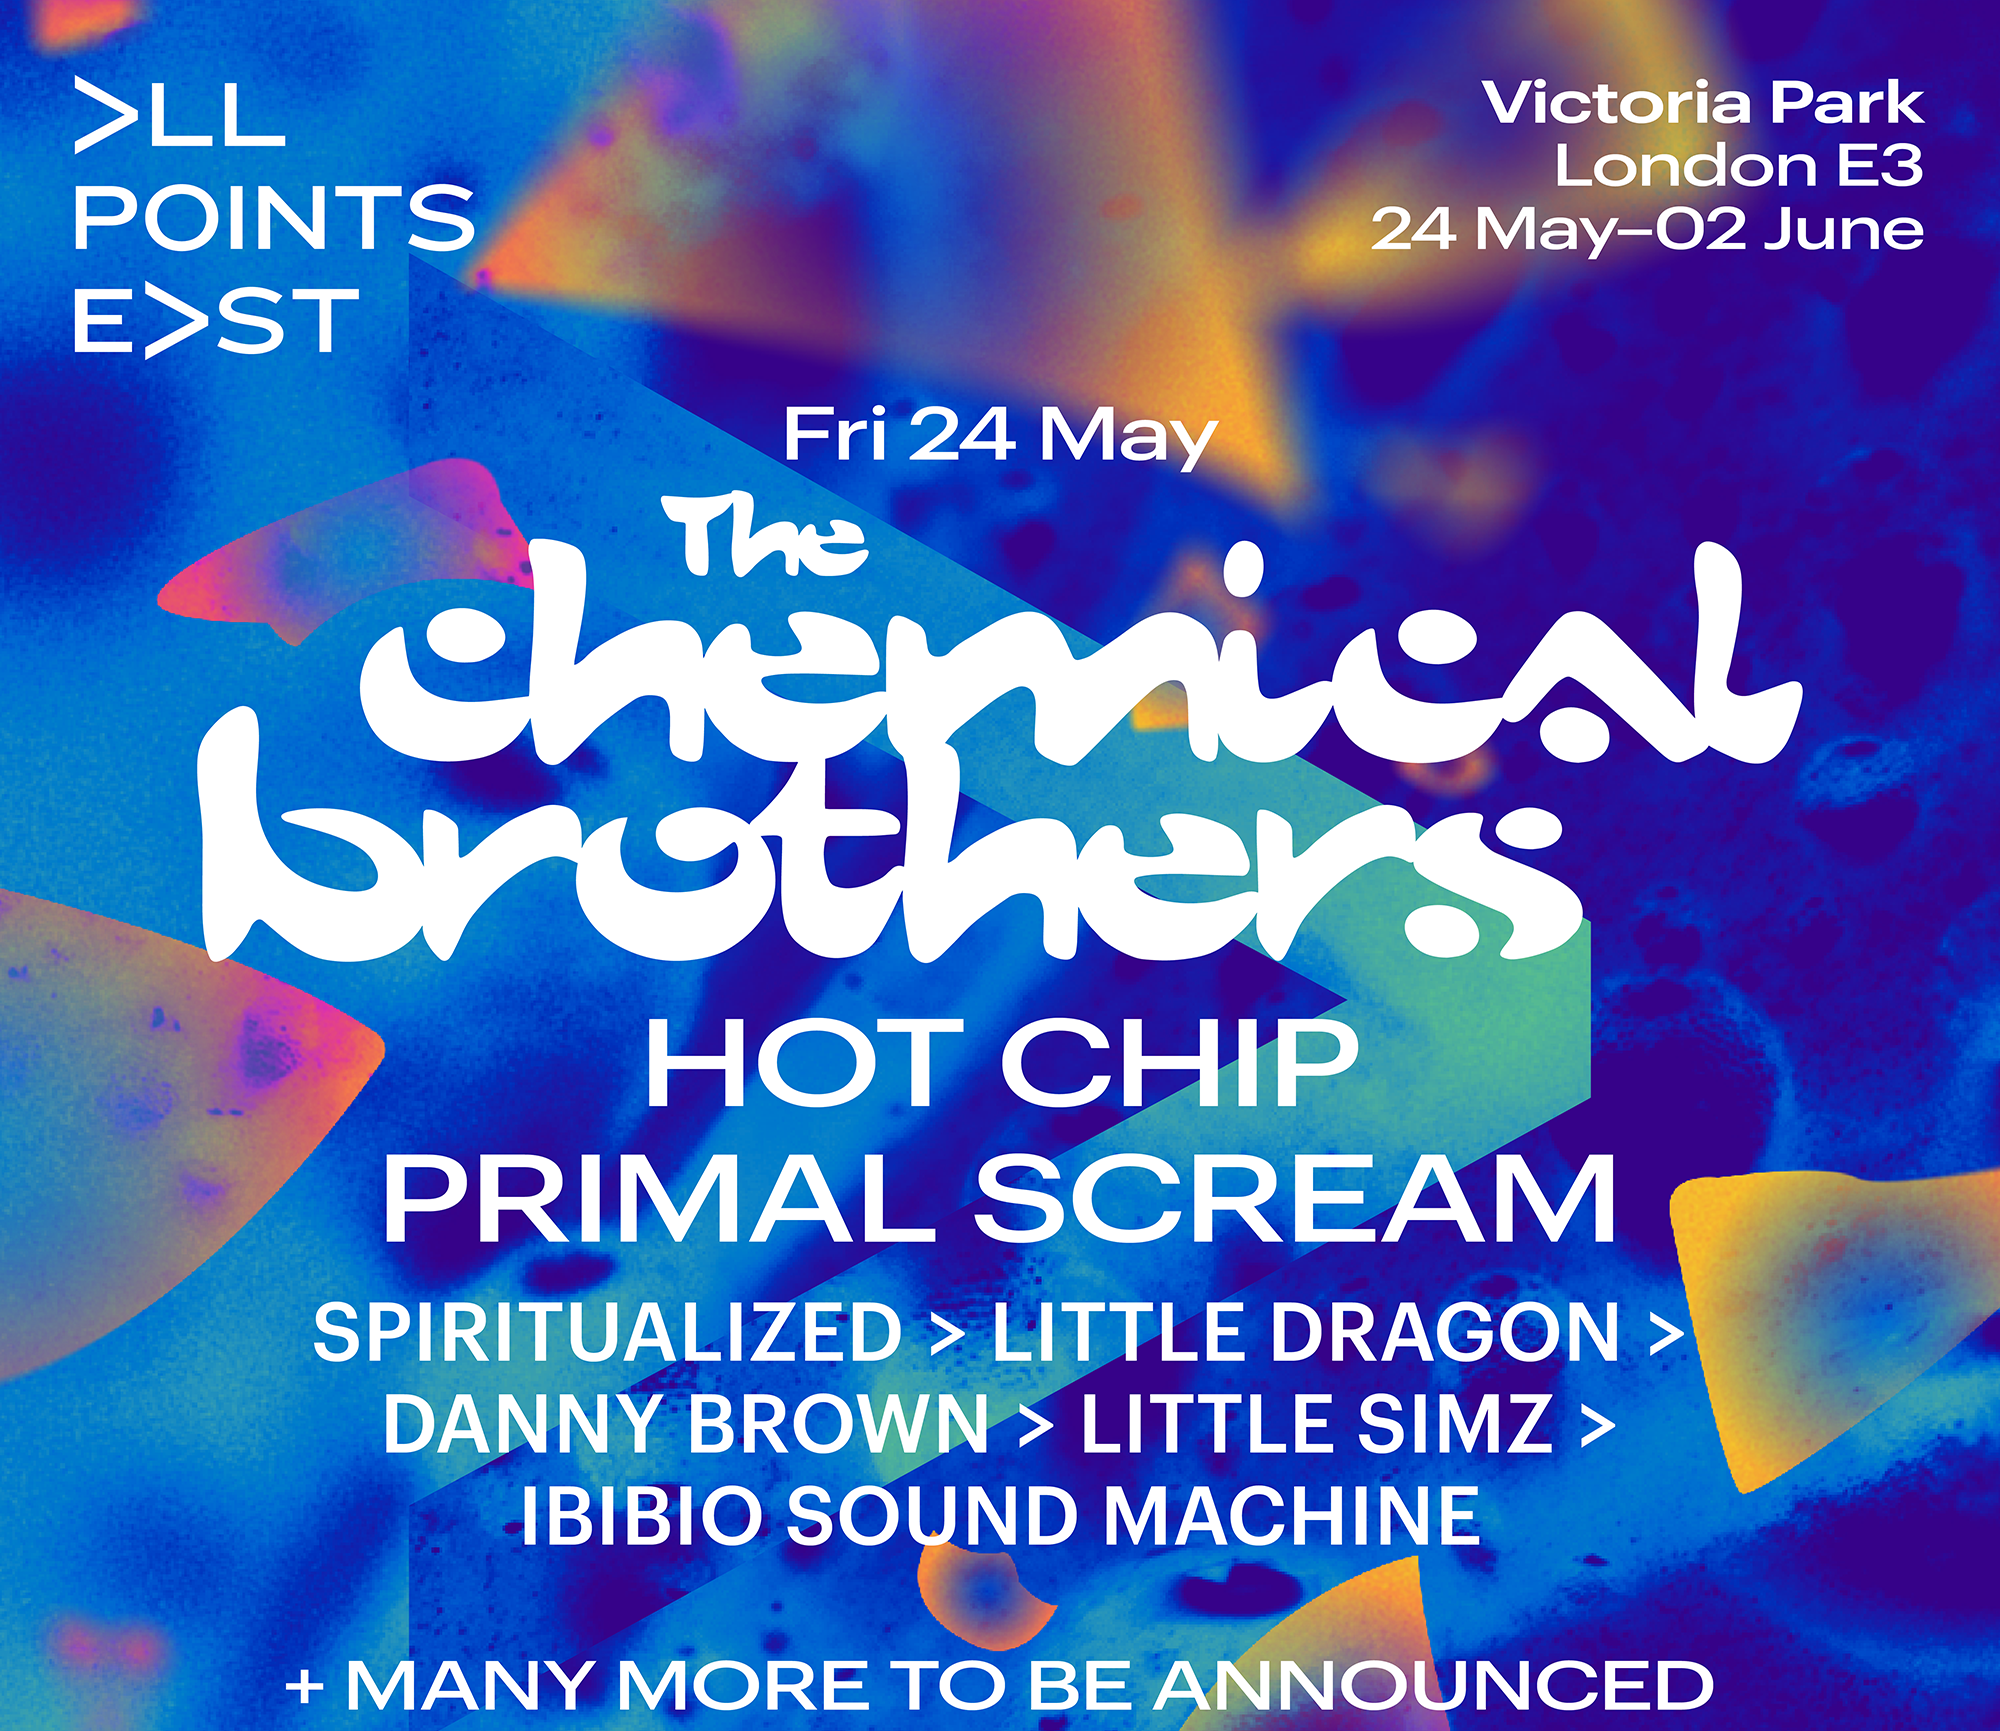 All Points East Festival 2019 The Chemical Brothers